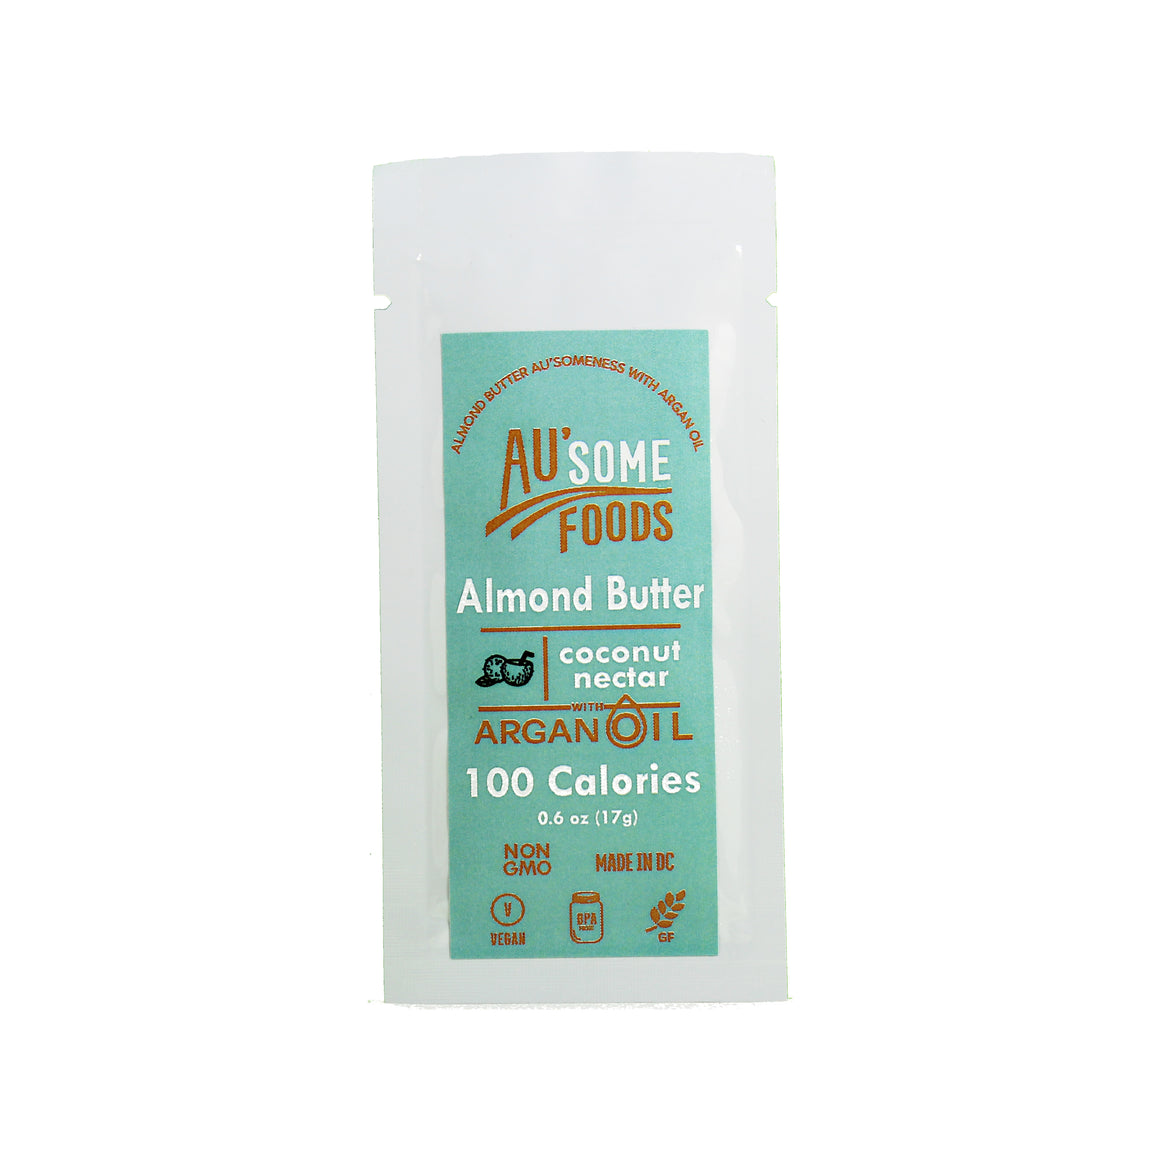 best almond butter. Au'some Foods almond butter with argan oil. coconut nectar. Au'some Foods. Single serve.